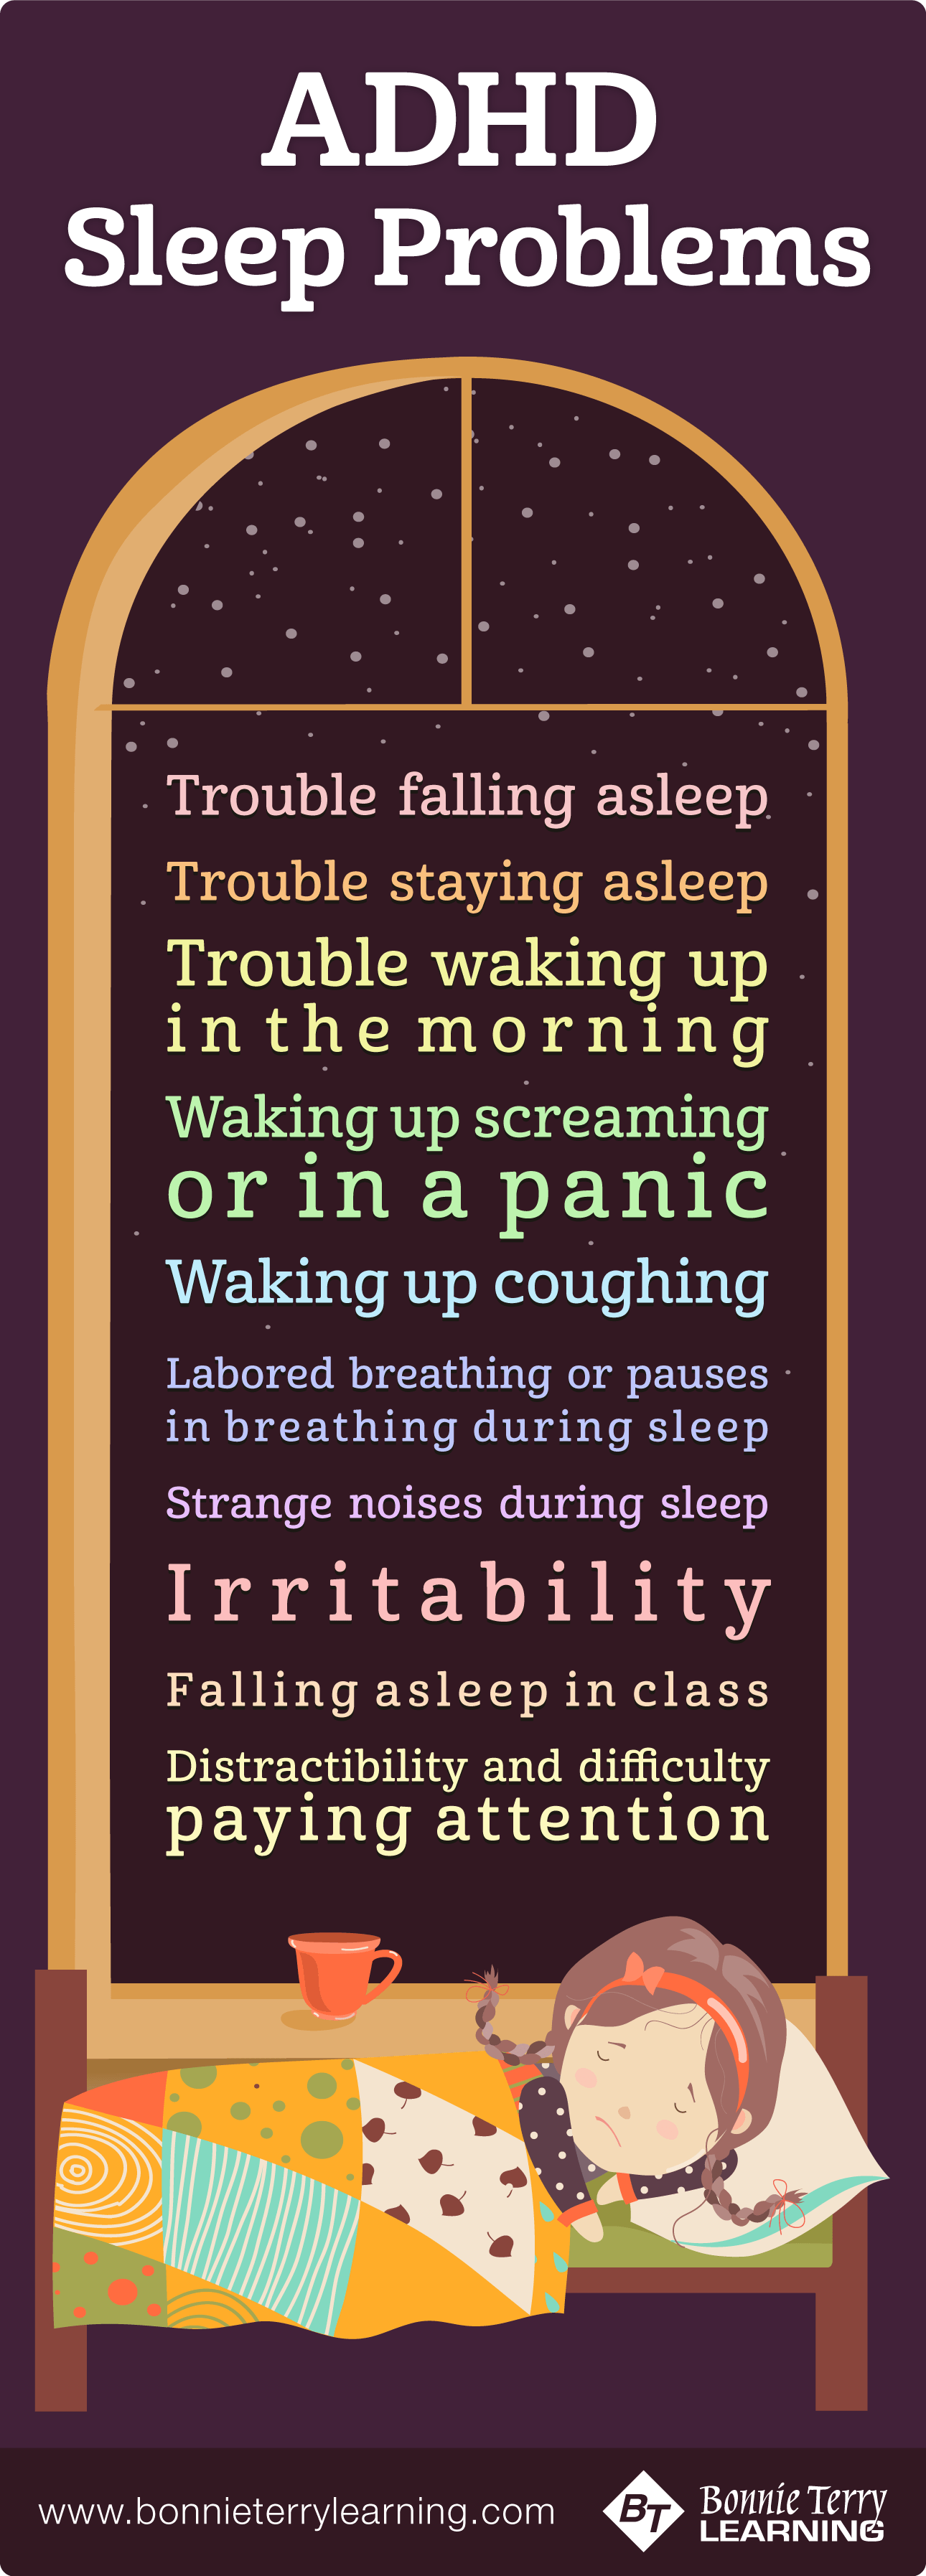 ADHD Sleep Problems and Symptoms